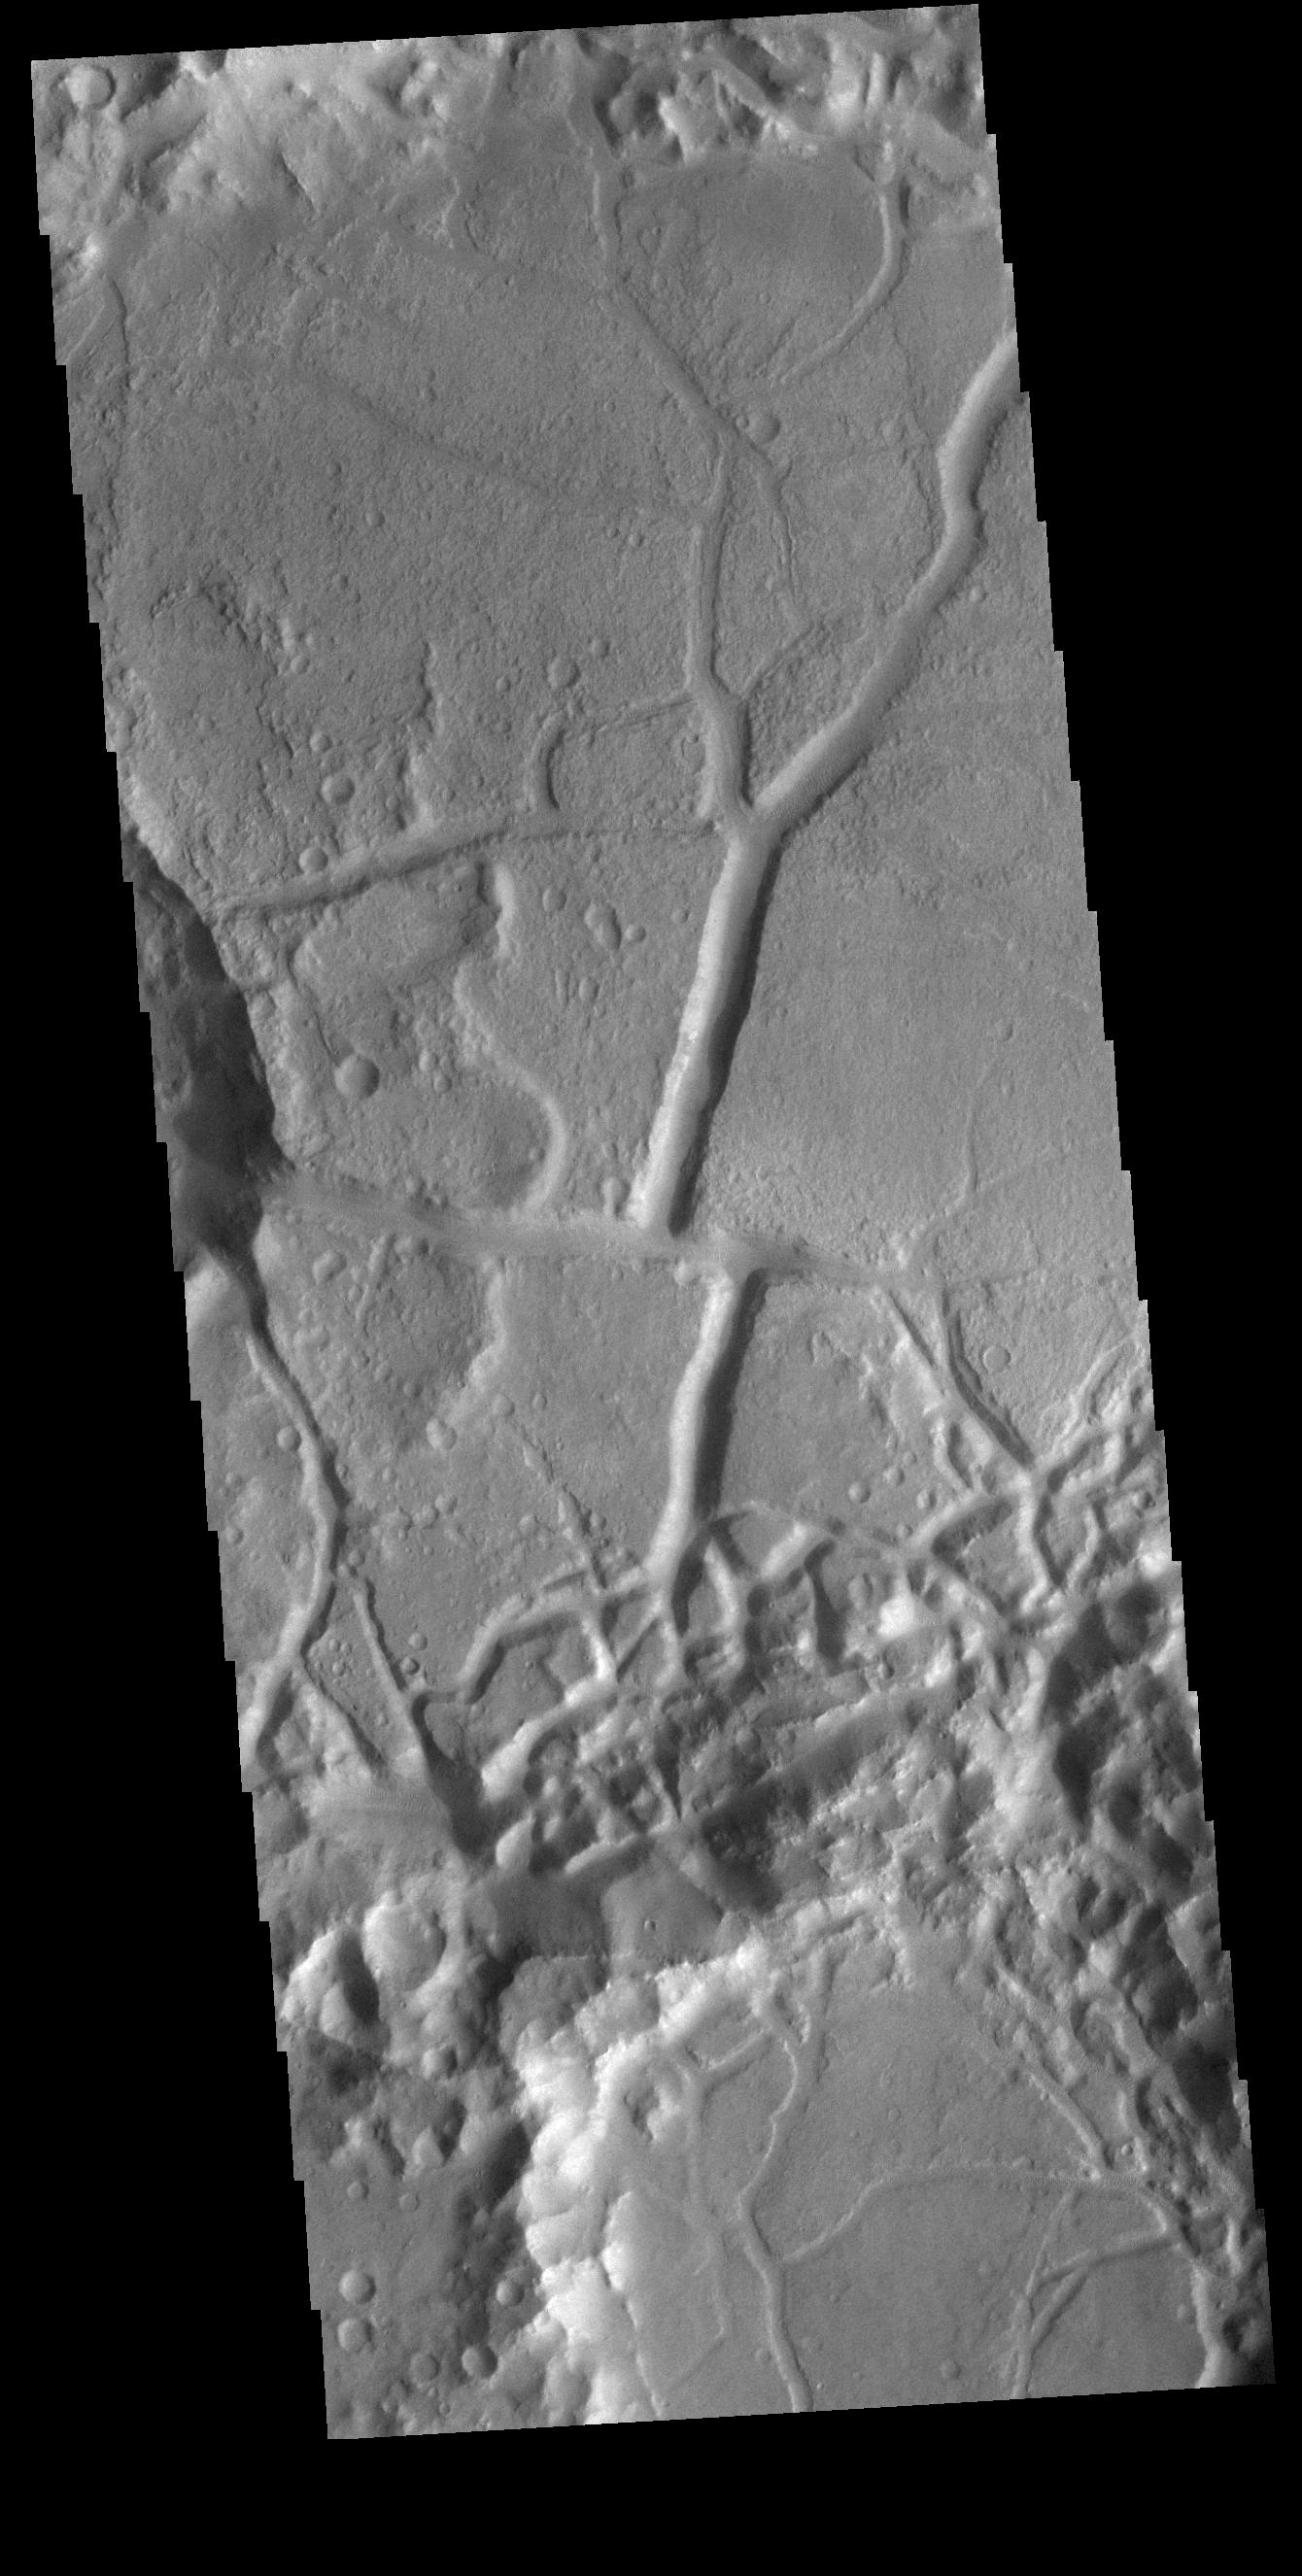 This image from NASAs Mars Odyssey shows part of the floor of an unnamed crater in Margaritifer Terra.